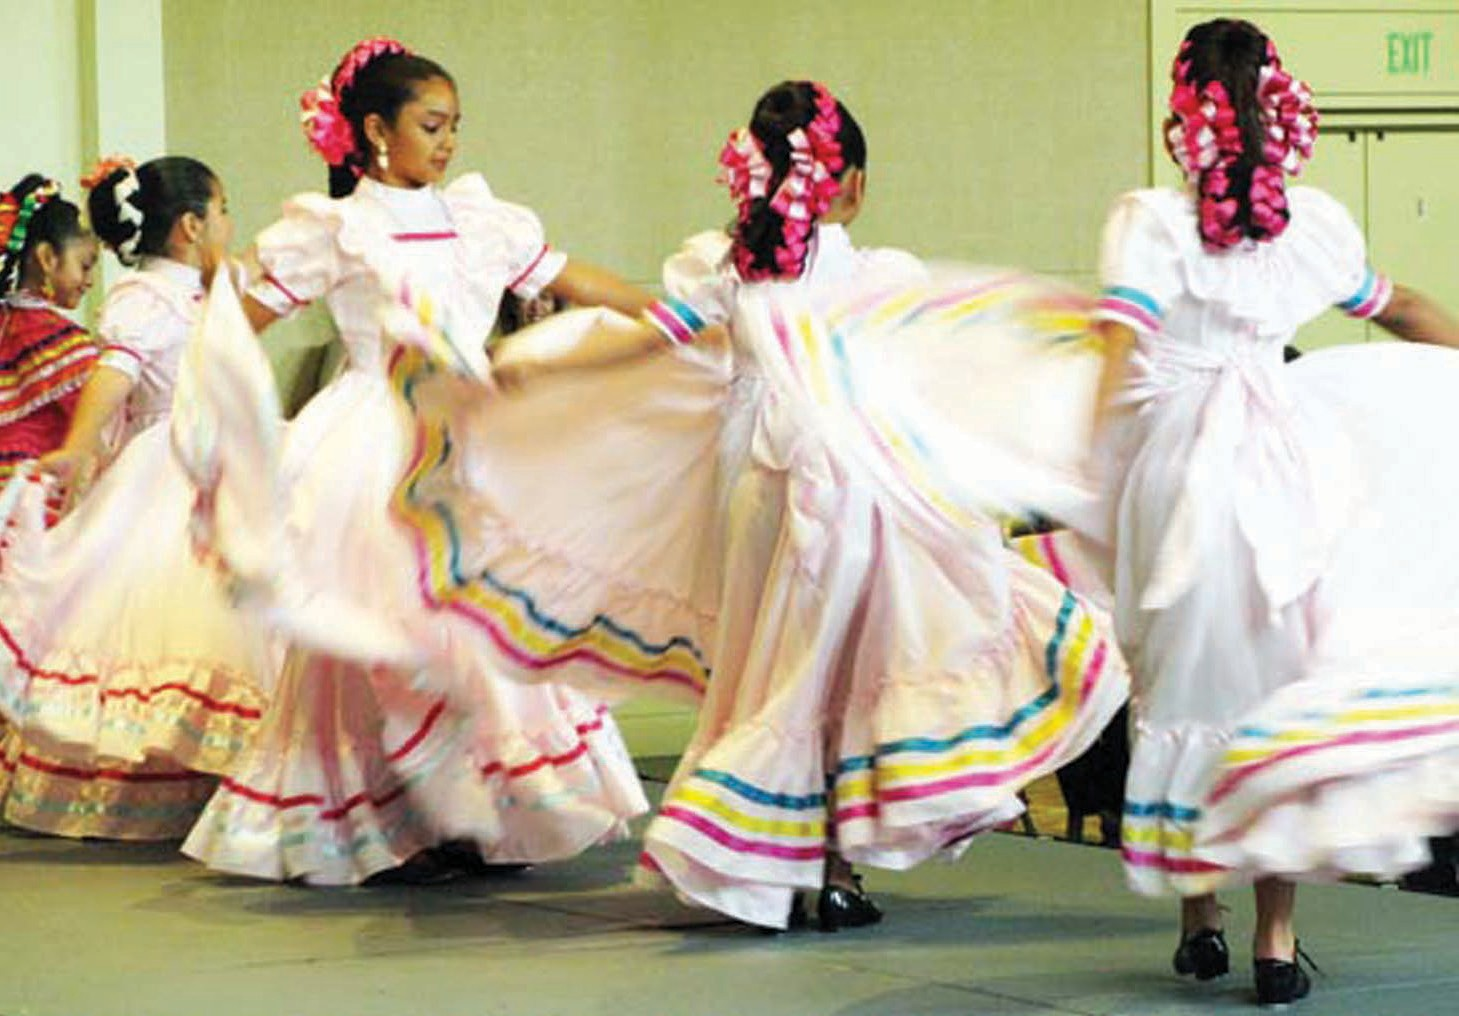 The dancers whirl to the traditional tunes.